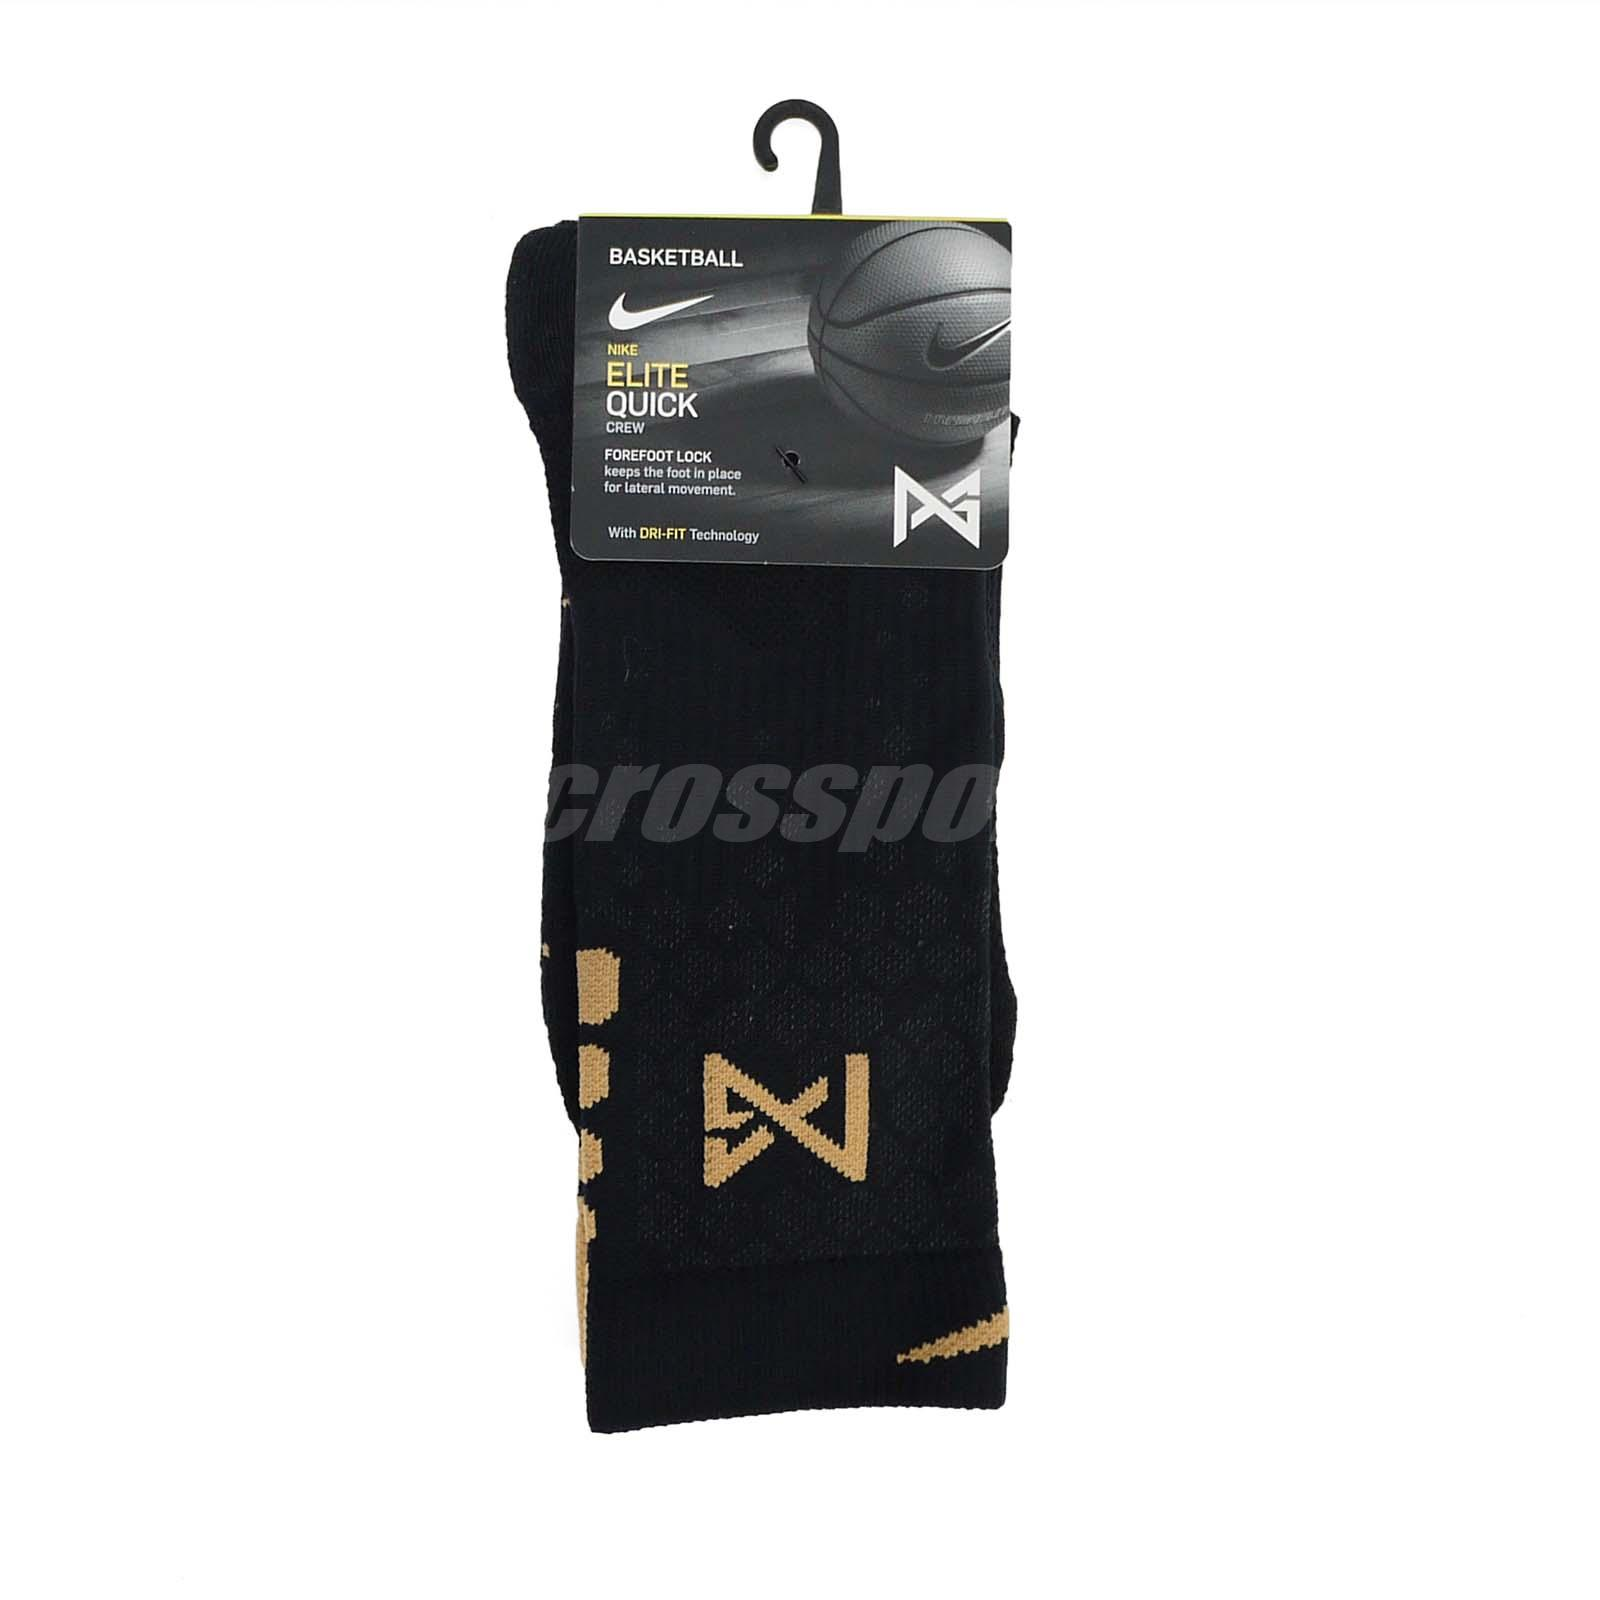 78648dffeec2f Details about Nike Unisex Basketball Elite Quick PG Crew Socks Paul George  NBA Gold SX6327-011